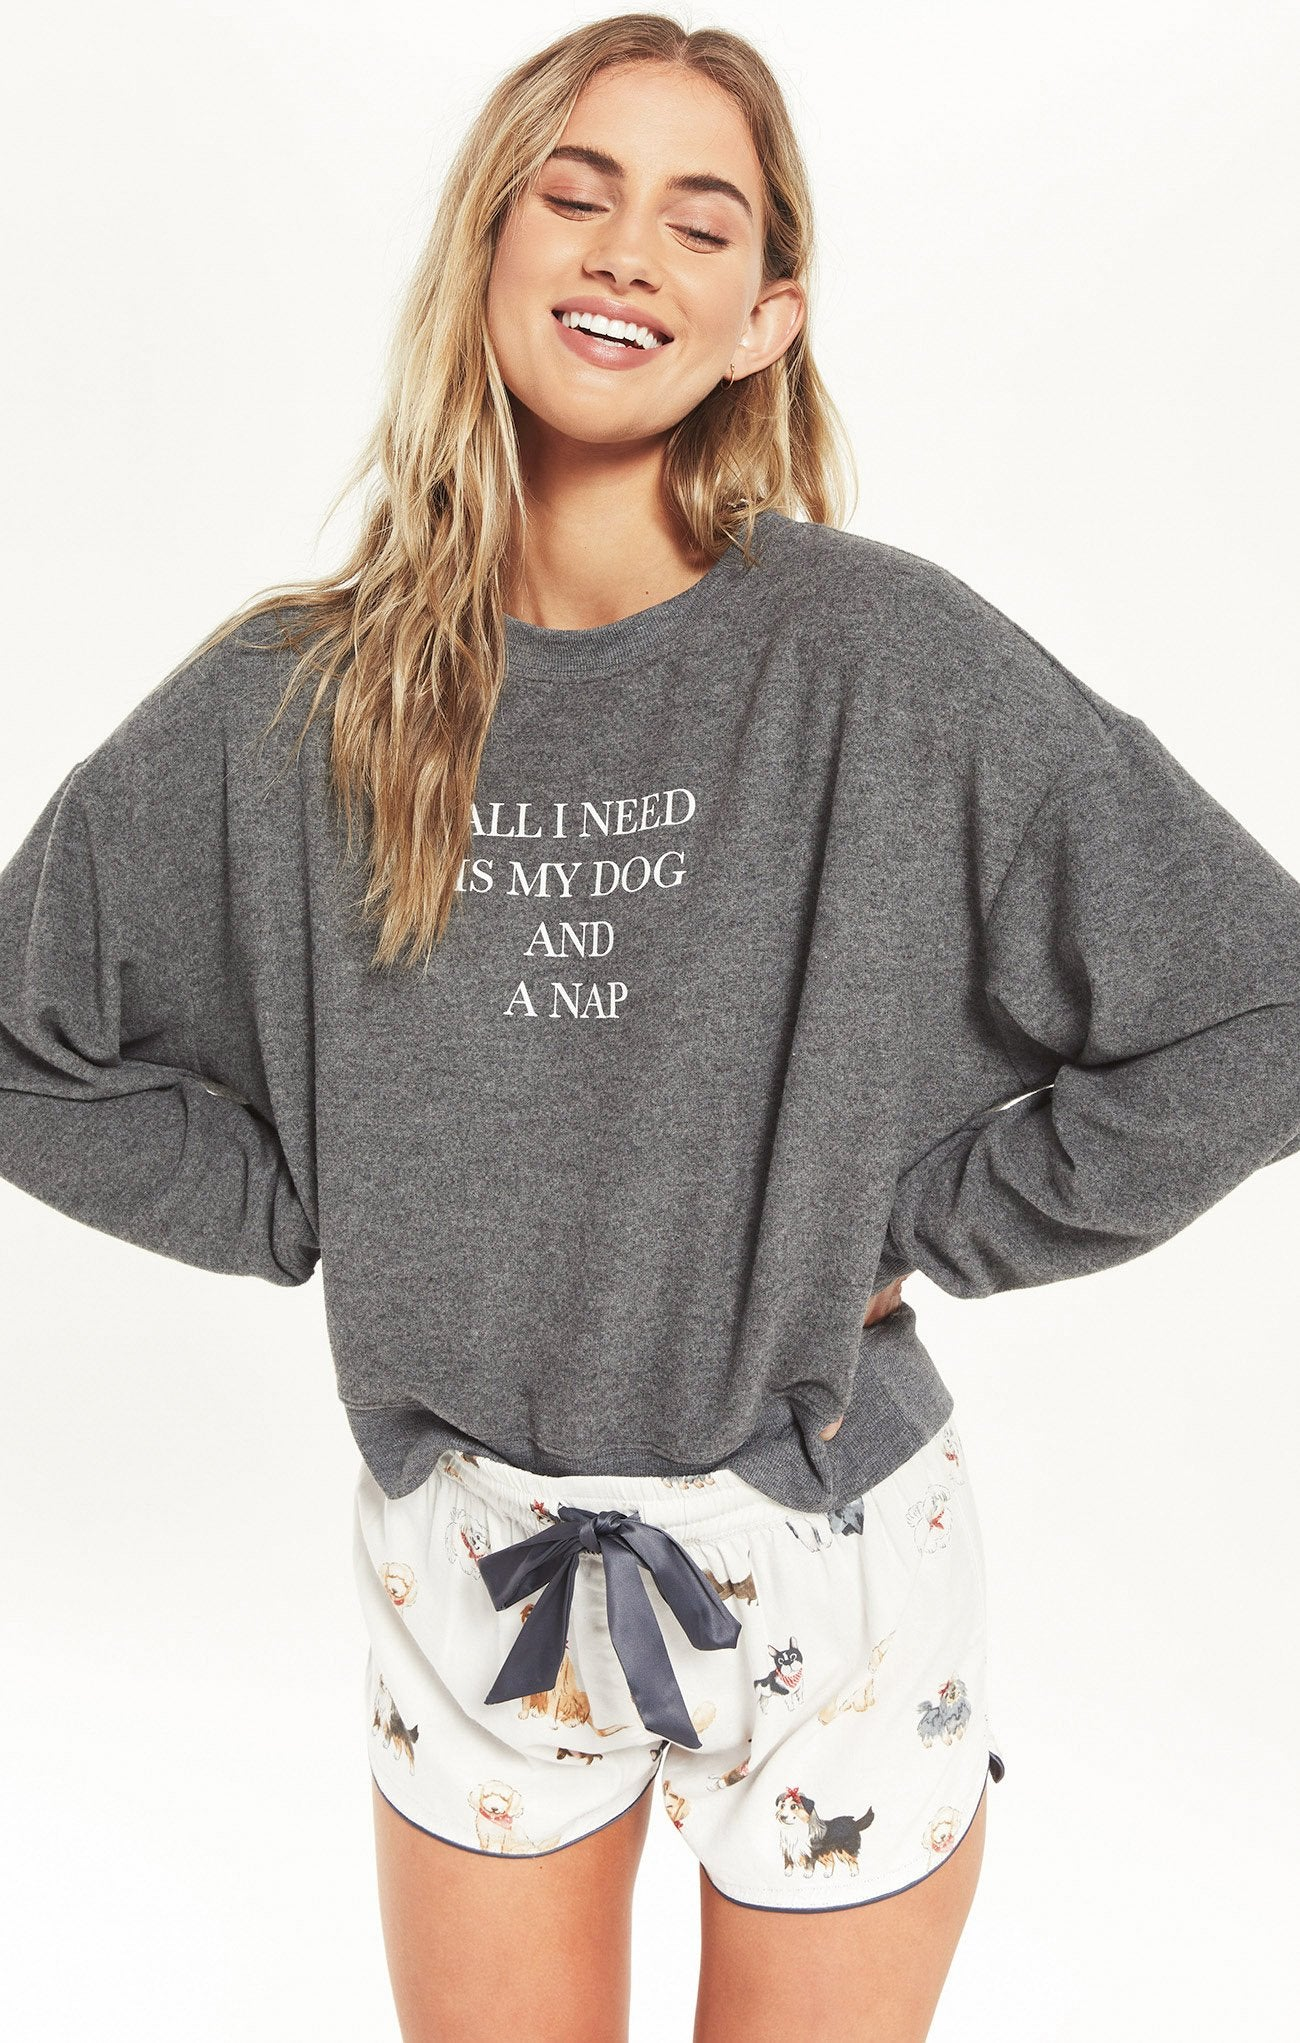 Z SUPPLY Women's Top Z Supply Elle All I Need Sweatshirt || David's Clothing